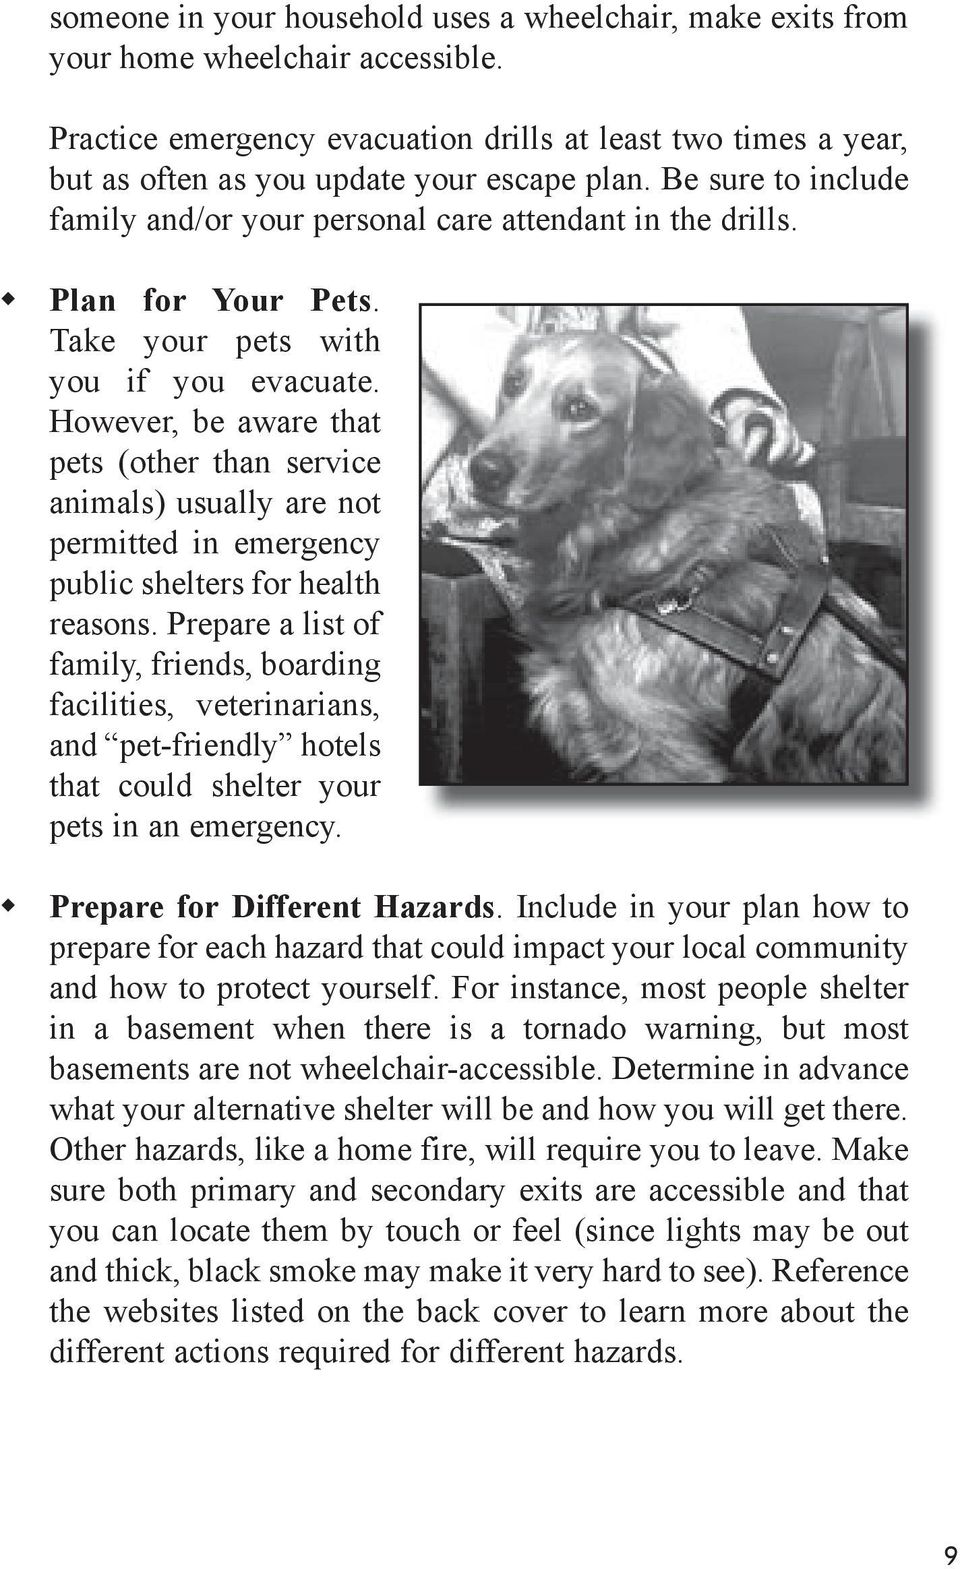 Plan for Your Pets. Take your pets with you if you evacuate. However, be aware that pets (other than service animals) usually are not permitted in emergency public shelters for health reasons.